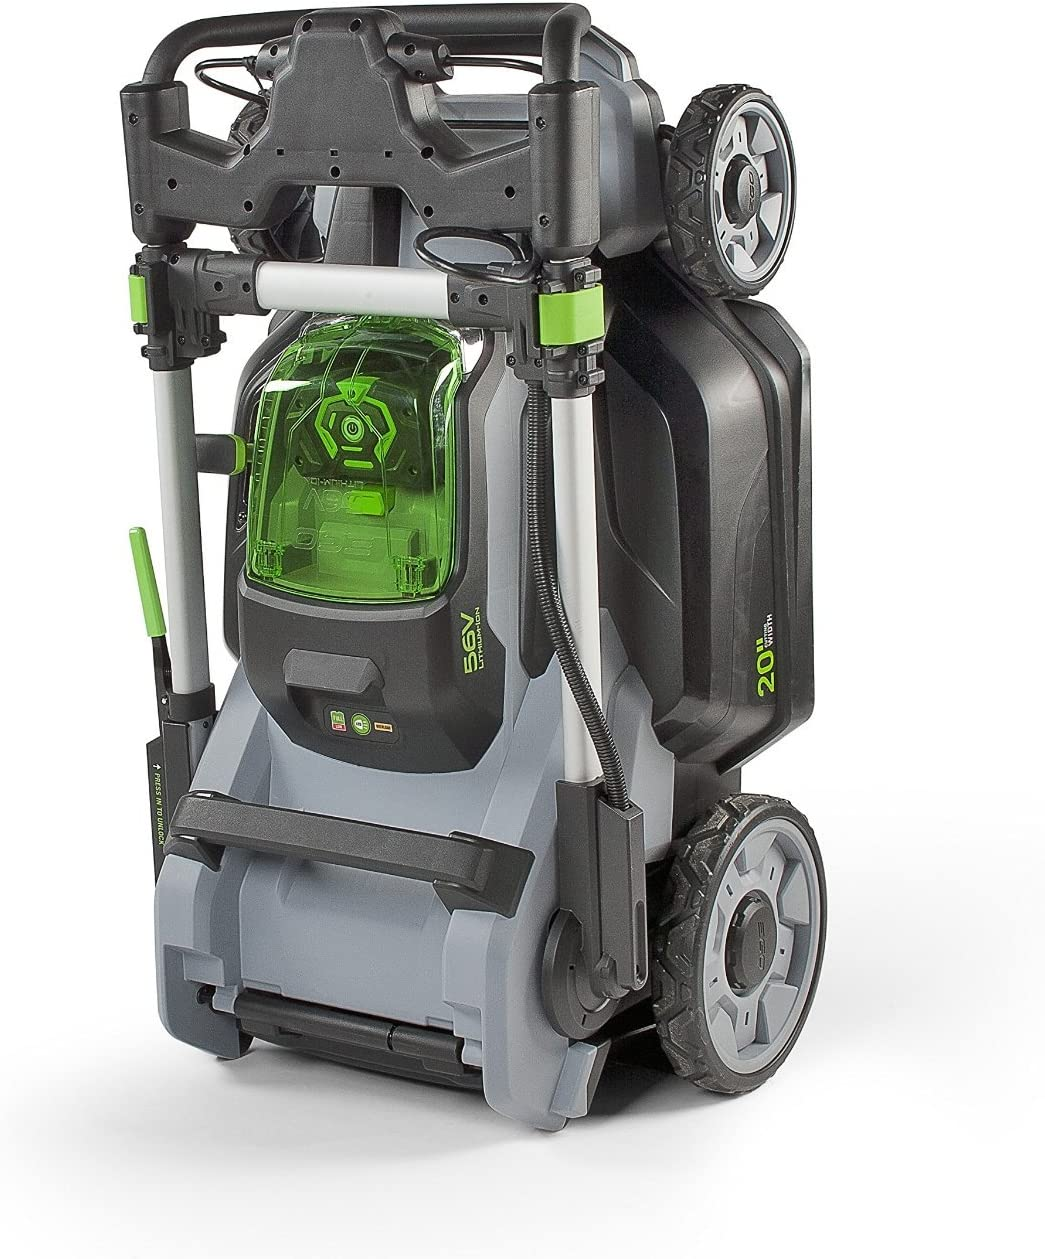 EGO Power+ LM2000-S Cordless Walk Behind Lawn Mower